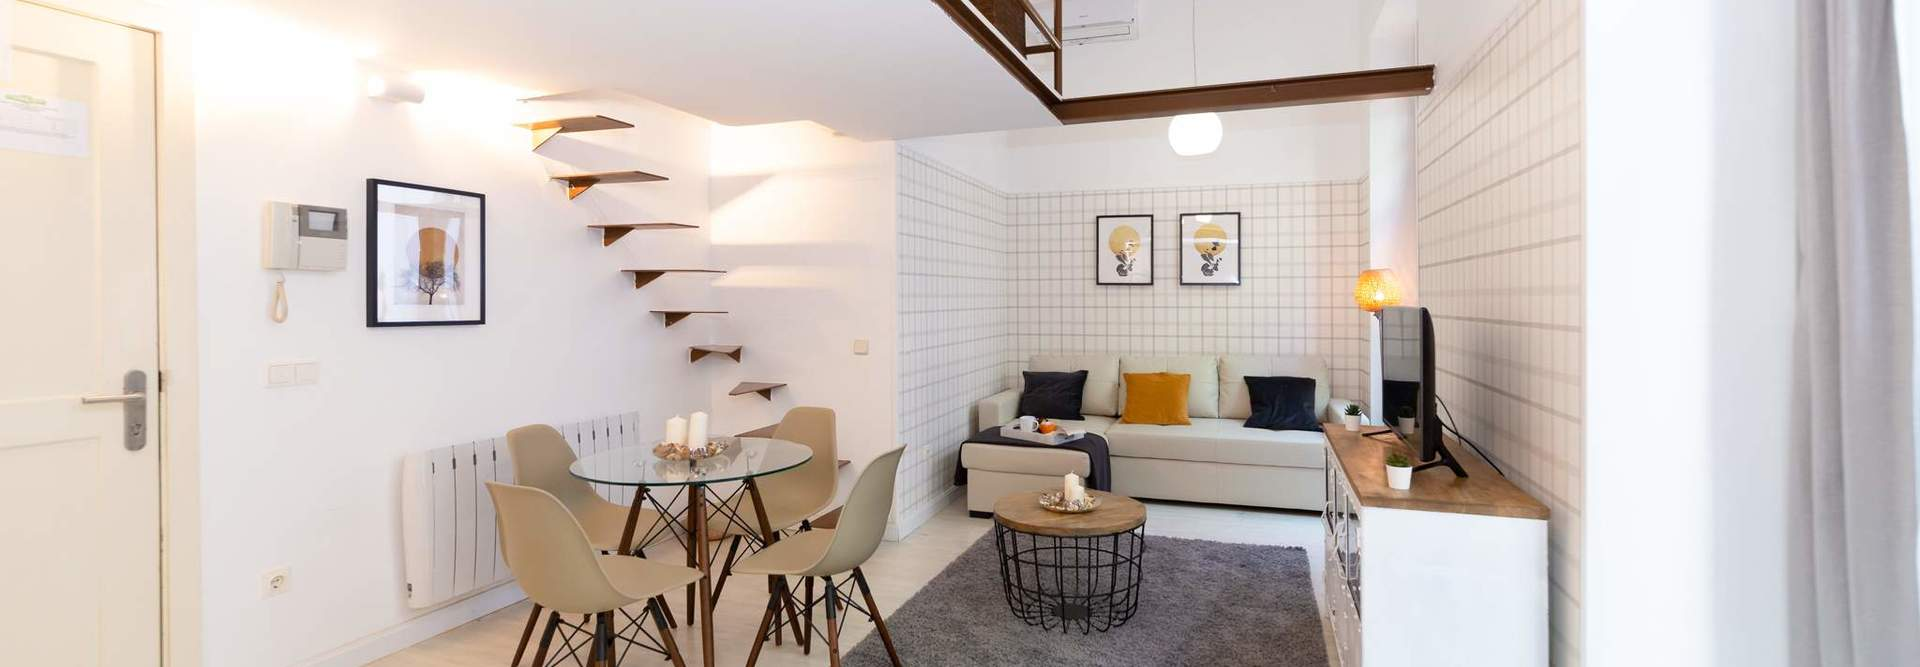 Home alquiler apartamentos madrid mad4rent 21